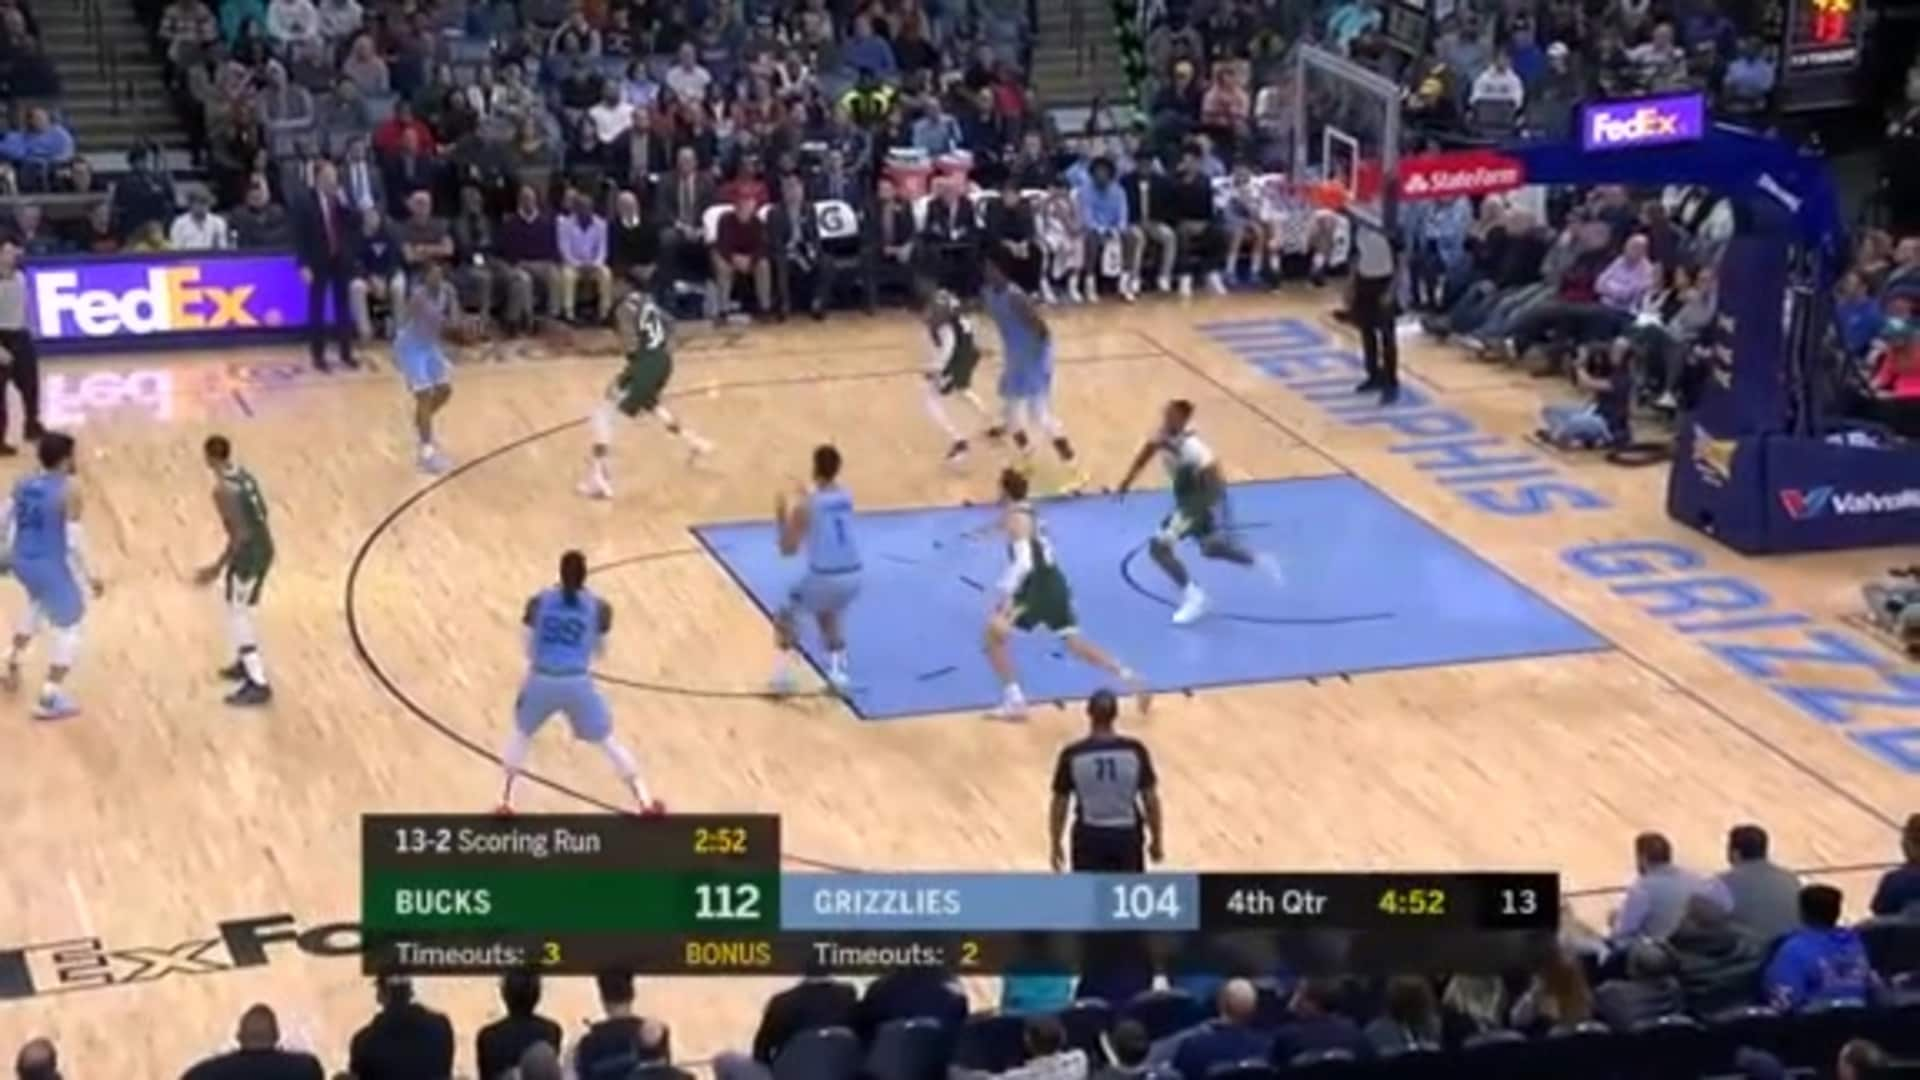 Grizzlies vs. Bucks highlights 12.13.19